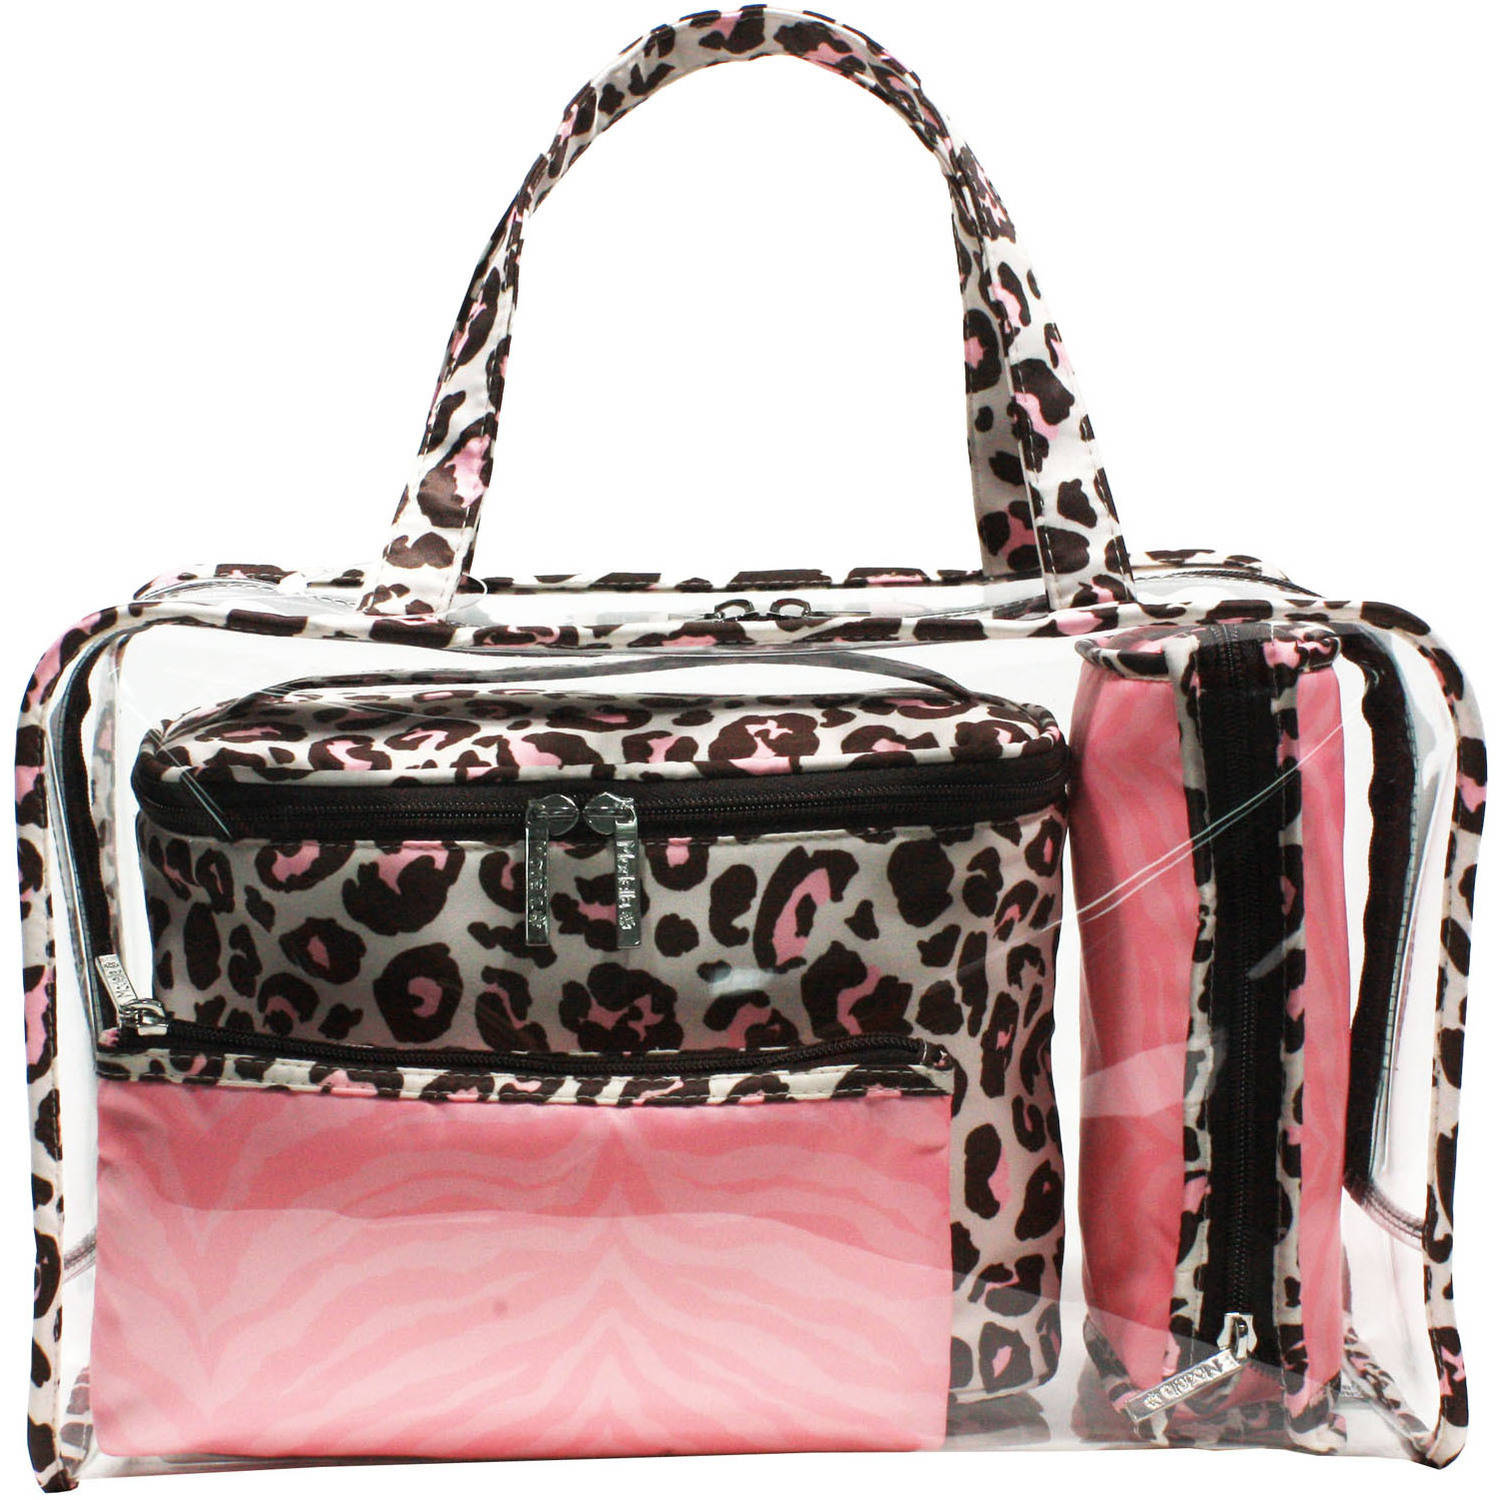 Modella Cheetah Weekender Set, 4 pc